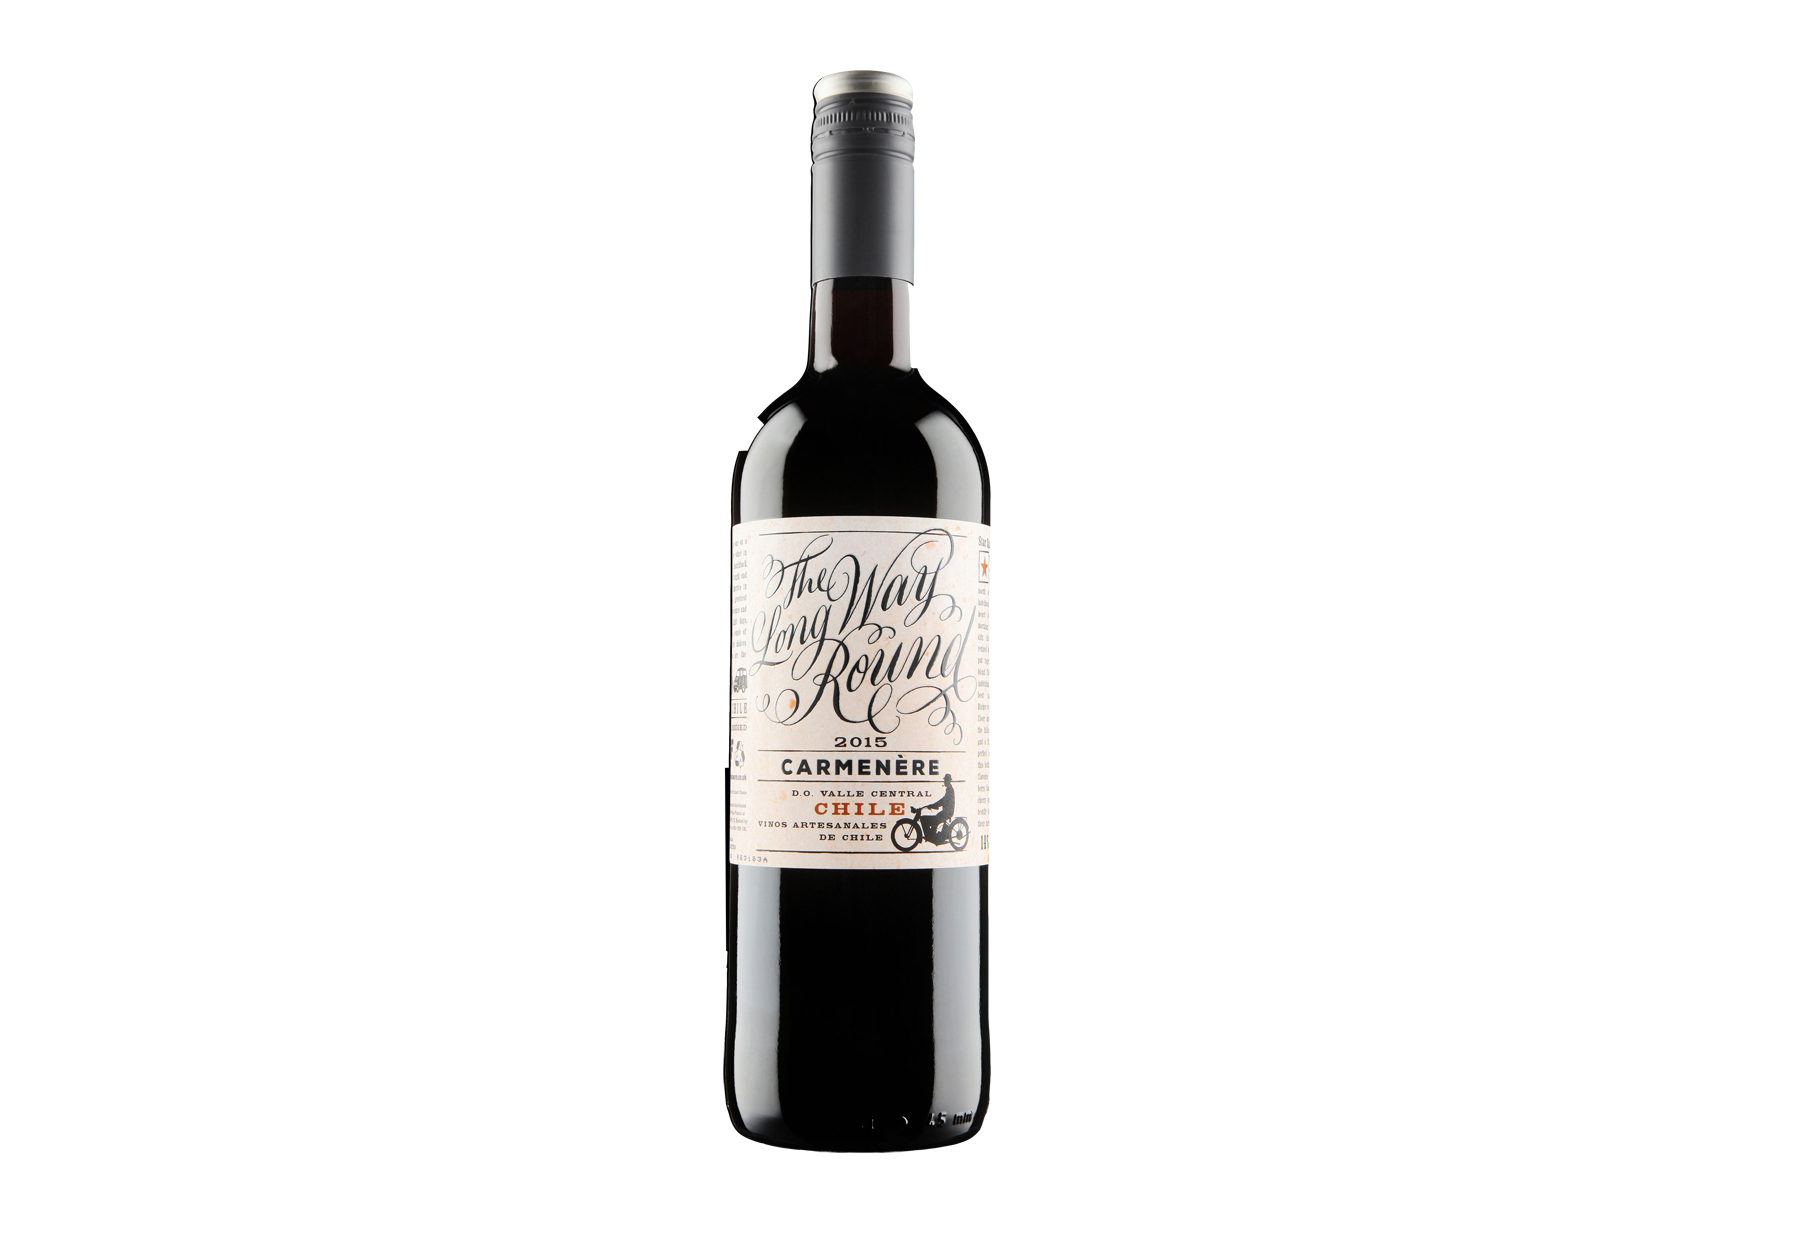 Bottle of The Long Way Round Reserve Carmenère